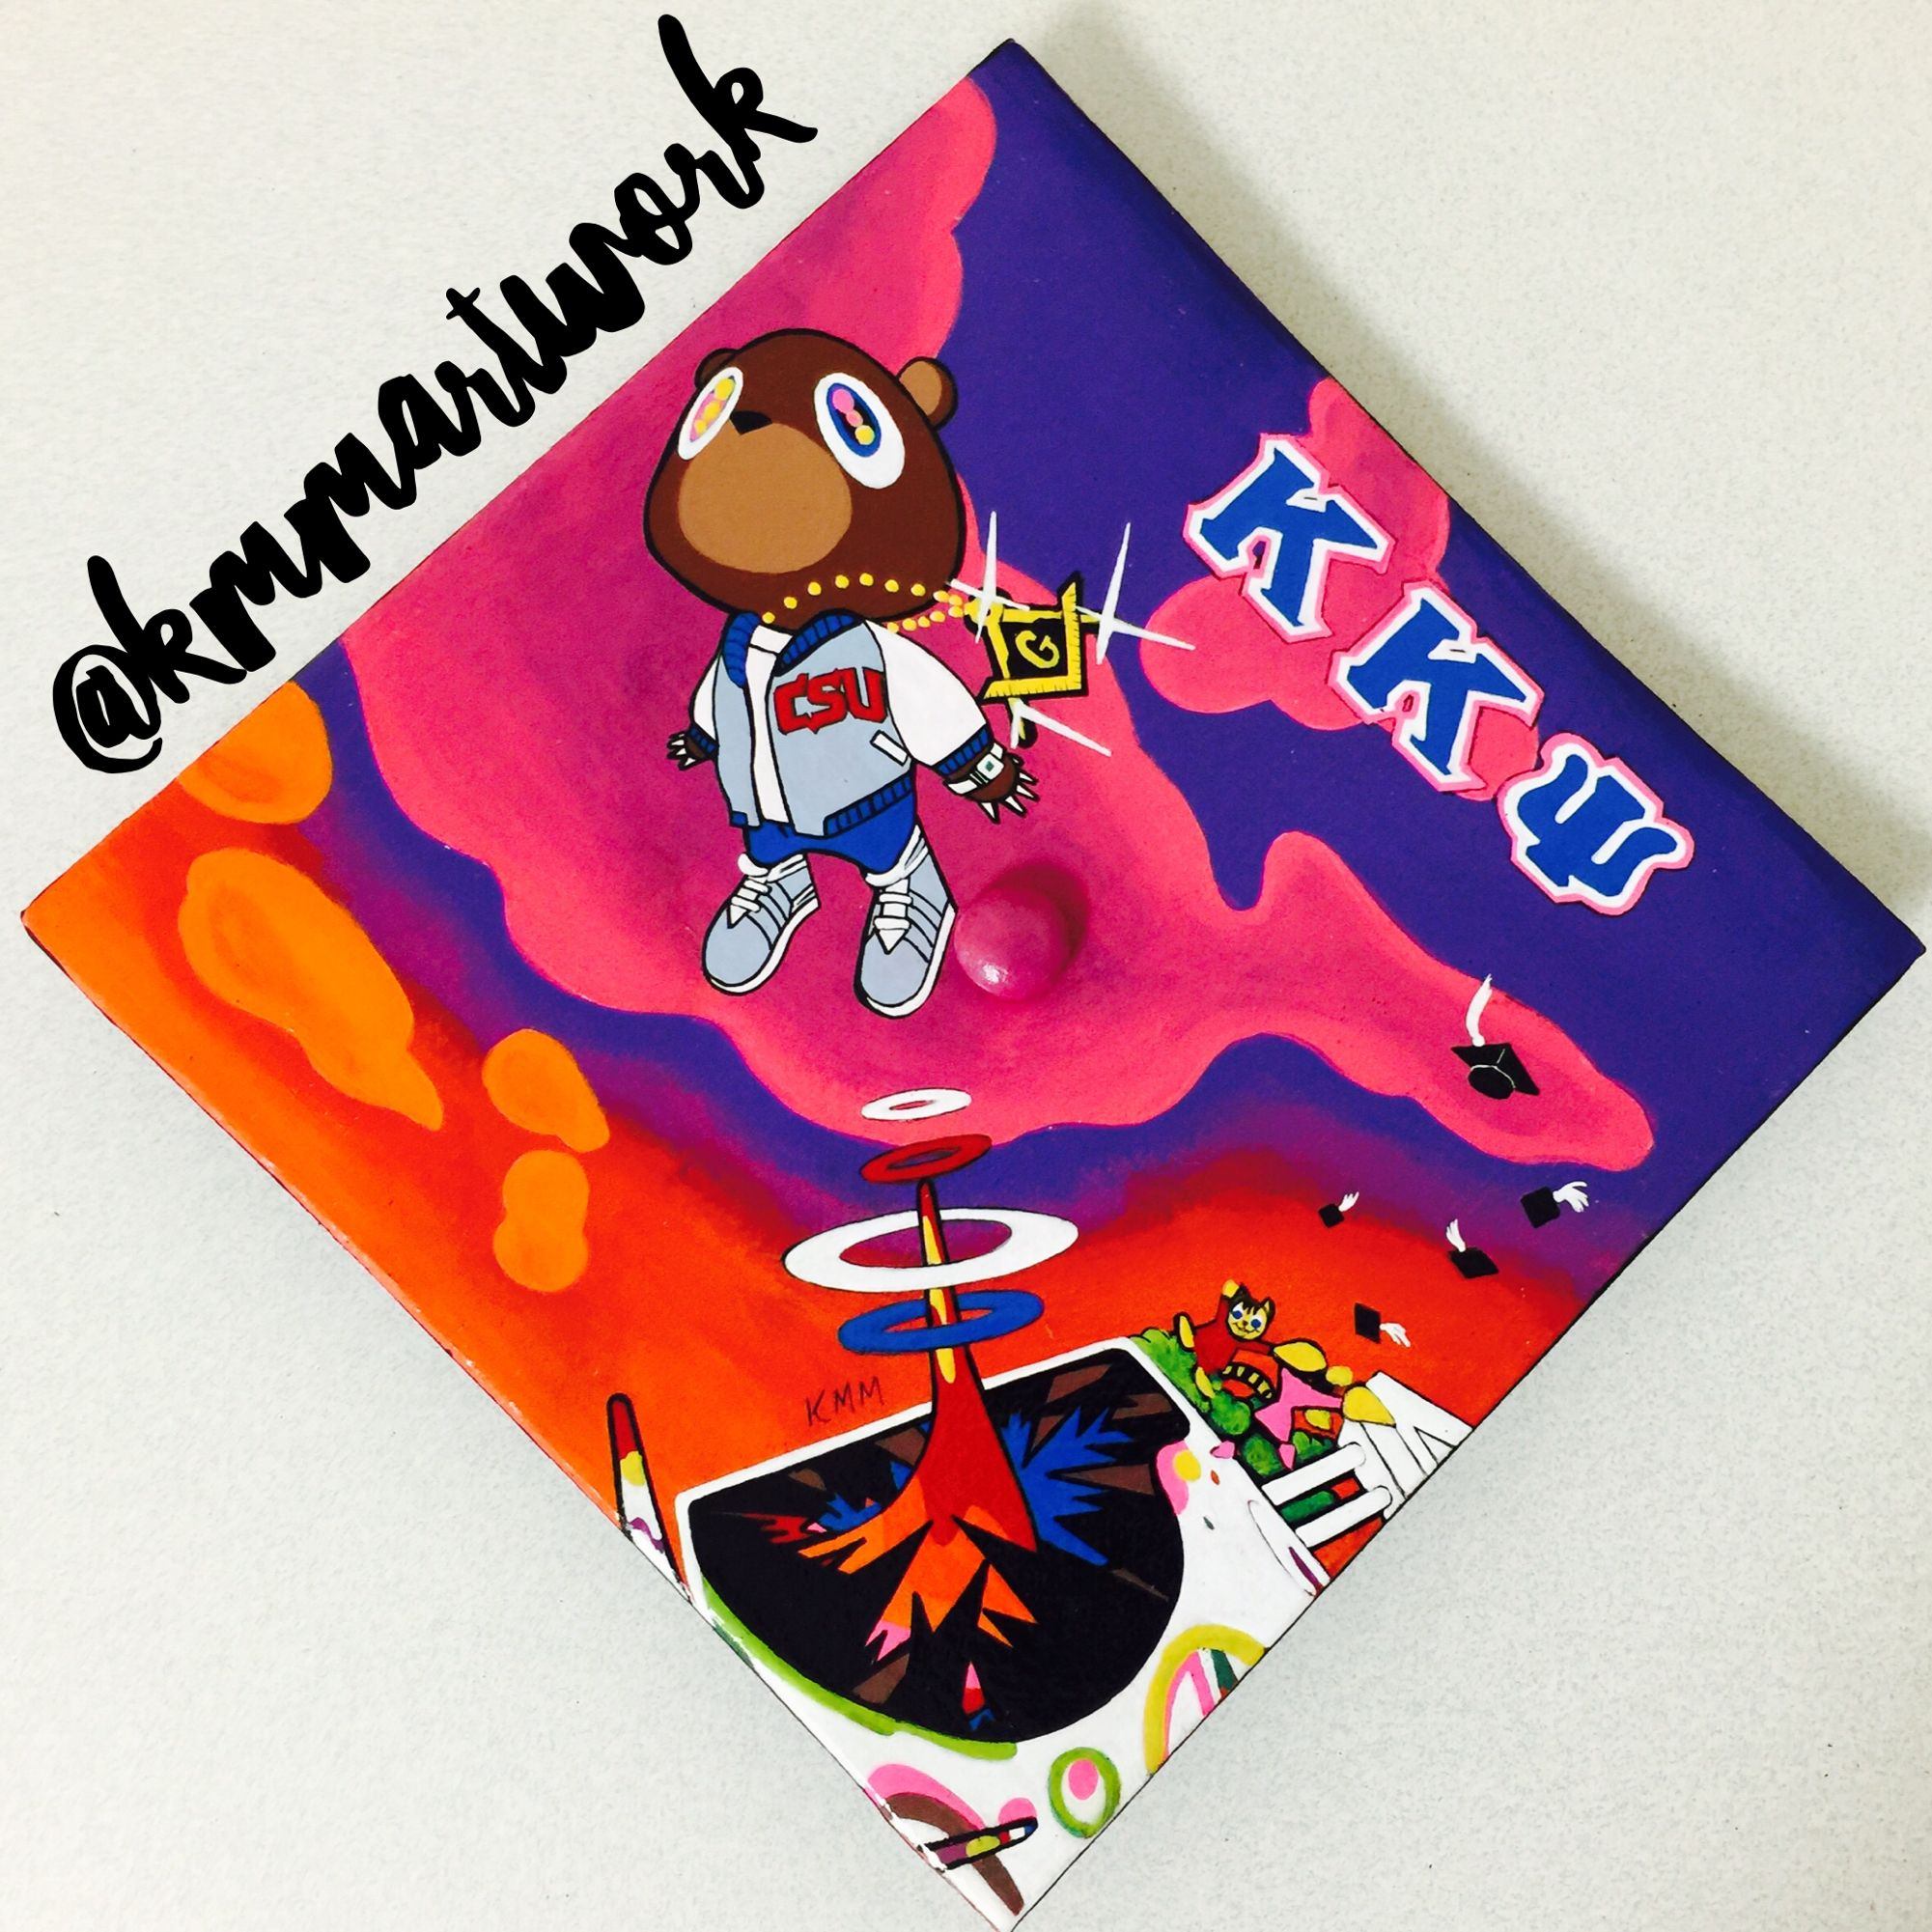 Kanye West Graduation Album Cover Graduation Cap Hand Painted Kmm Artwork Kappa Kappa P Graduation Cap Decoration Graduation Cap Designs Graduation Album